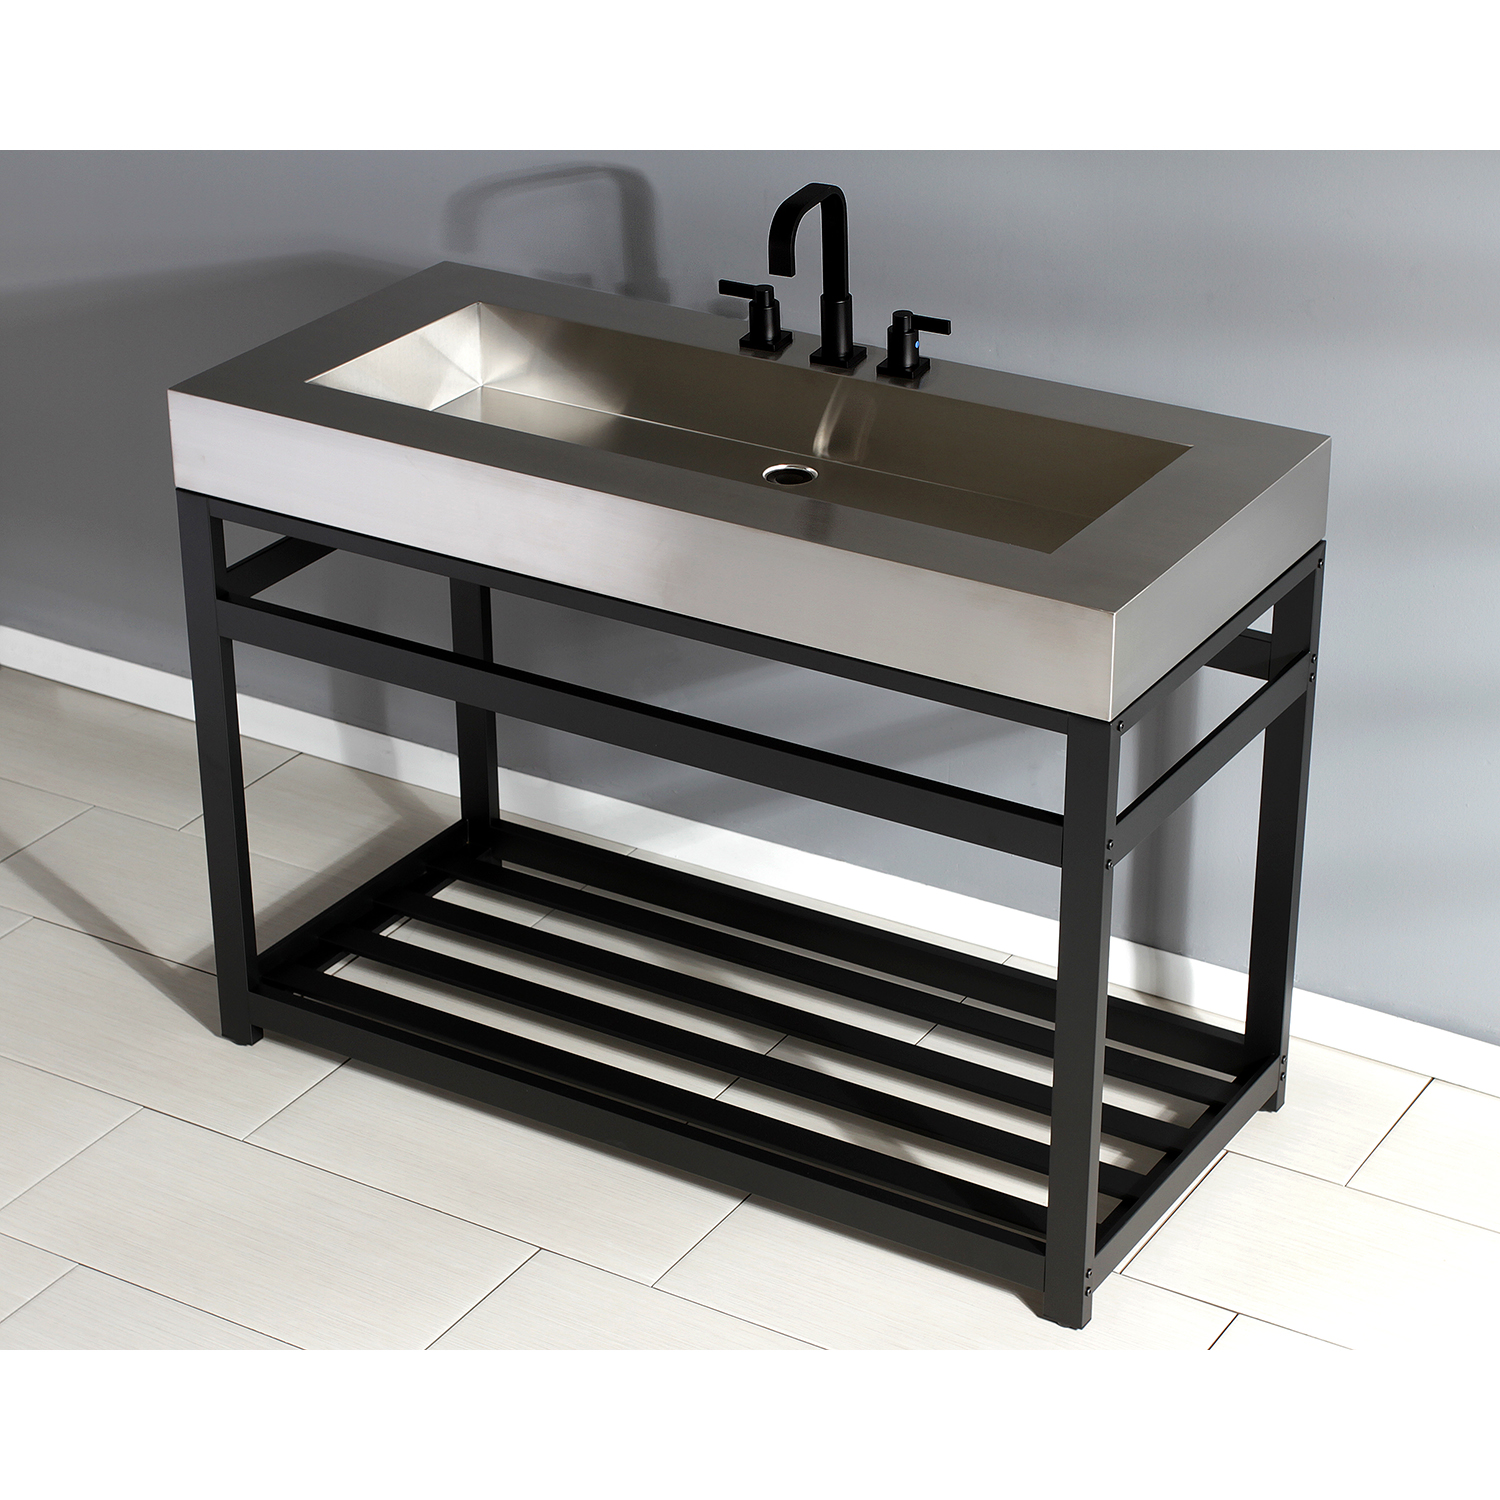 fauceture 49 stainless steel bathroom sink with iron console sink base brushed matte black